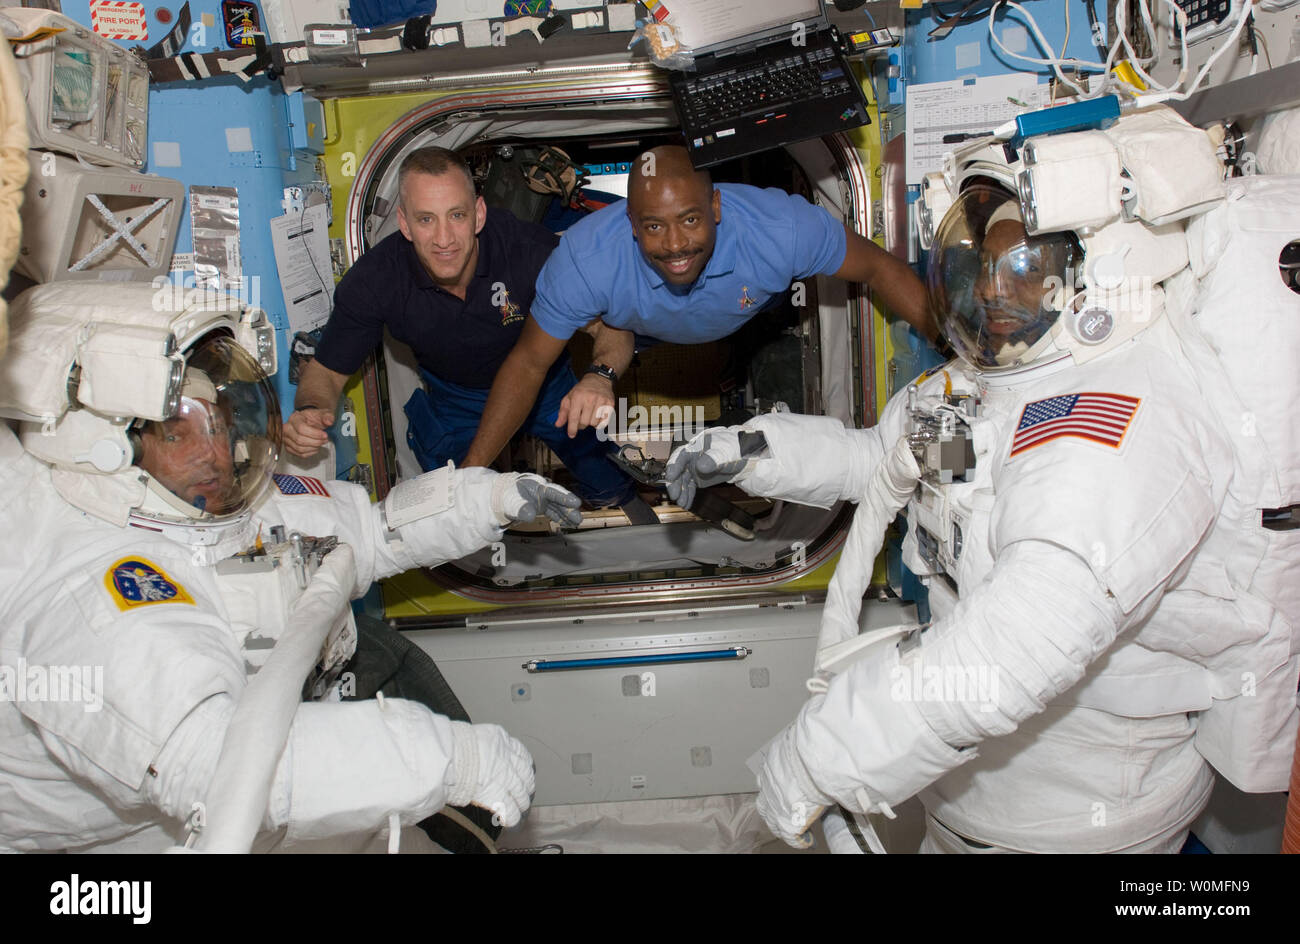 This NASA photo shows astronauts Mike Foreman (left) and Robert L. Satcher Jr. (right), STS-129 mission specialists, as they prepare for their flight day four space walk, as astronauts Charles O. Hobaugh (second left), commander, and Leland Melvin, mission specialist, stay close at hand to assist them, November 19, 2009.   UPI/NASA Stock Photo